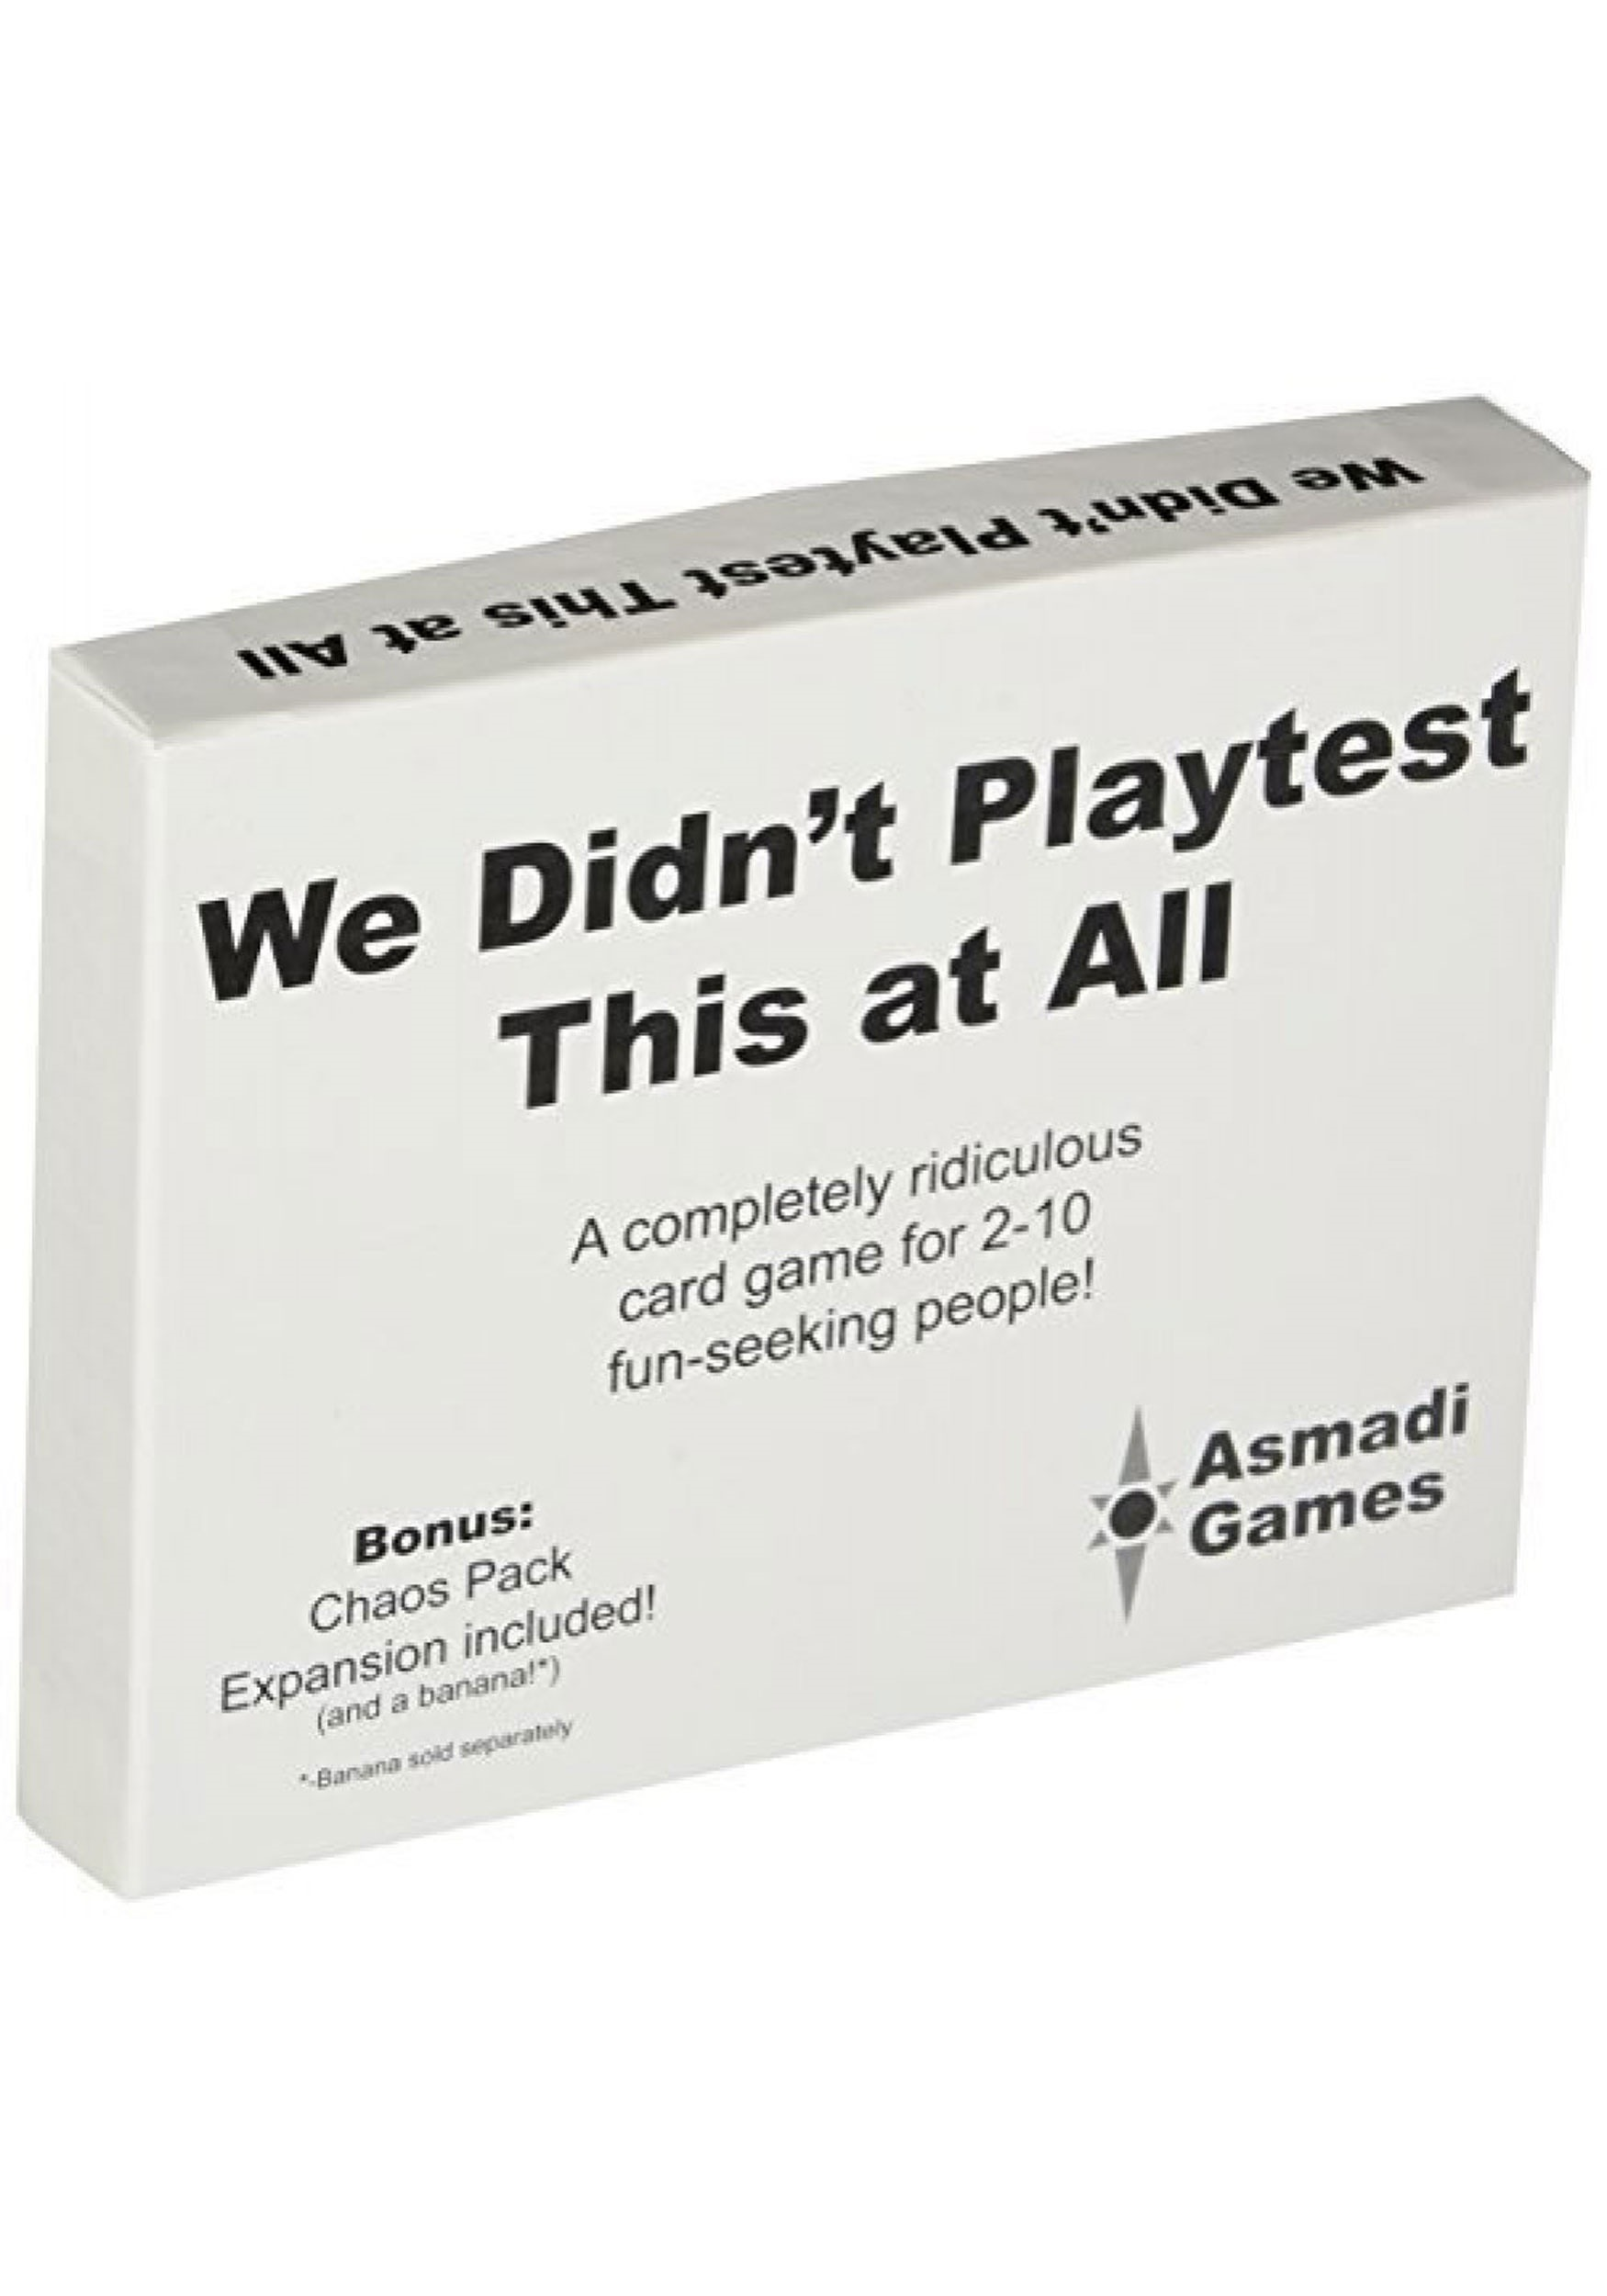 We_Didnt_Playtest_This_at_All_Card_Game